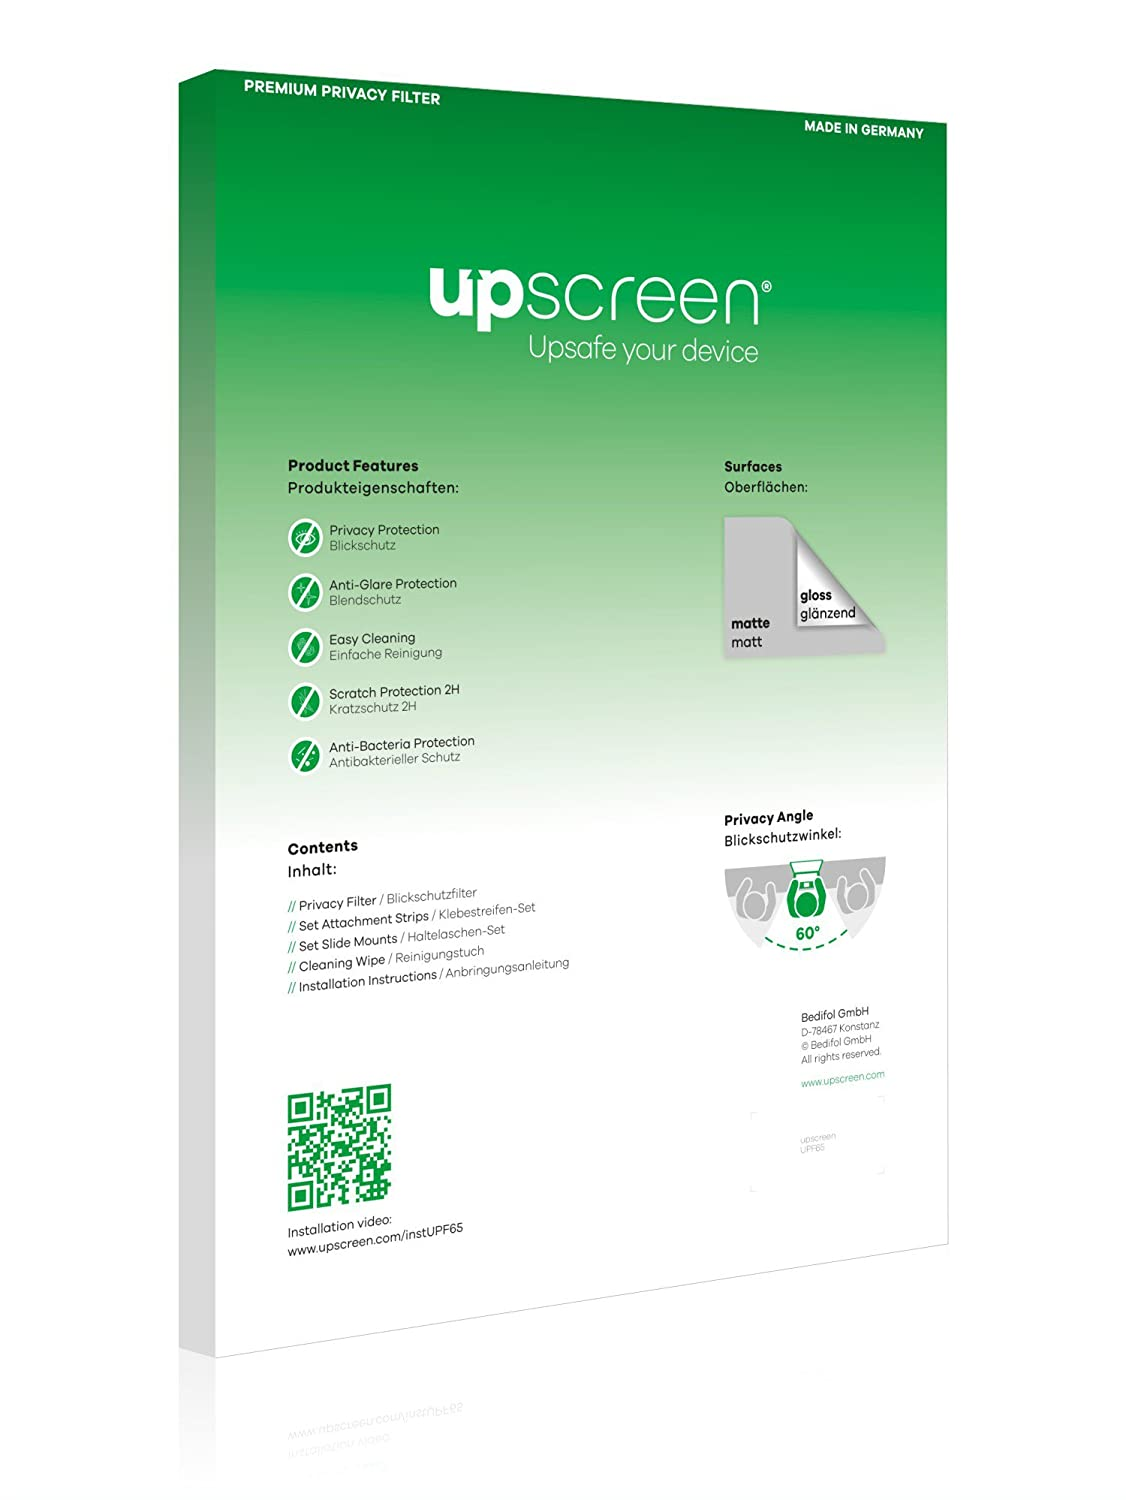 upscreen Filtro de Privacidad Compatible con Lenovo Yoga C940 14 2-in-1 Protector Pantalla Anti-Espia Privacy Filter